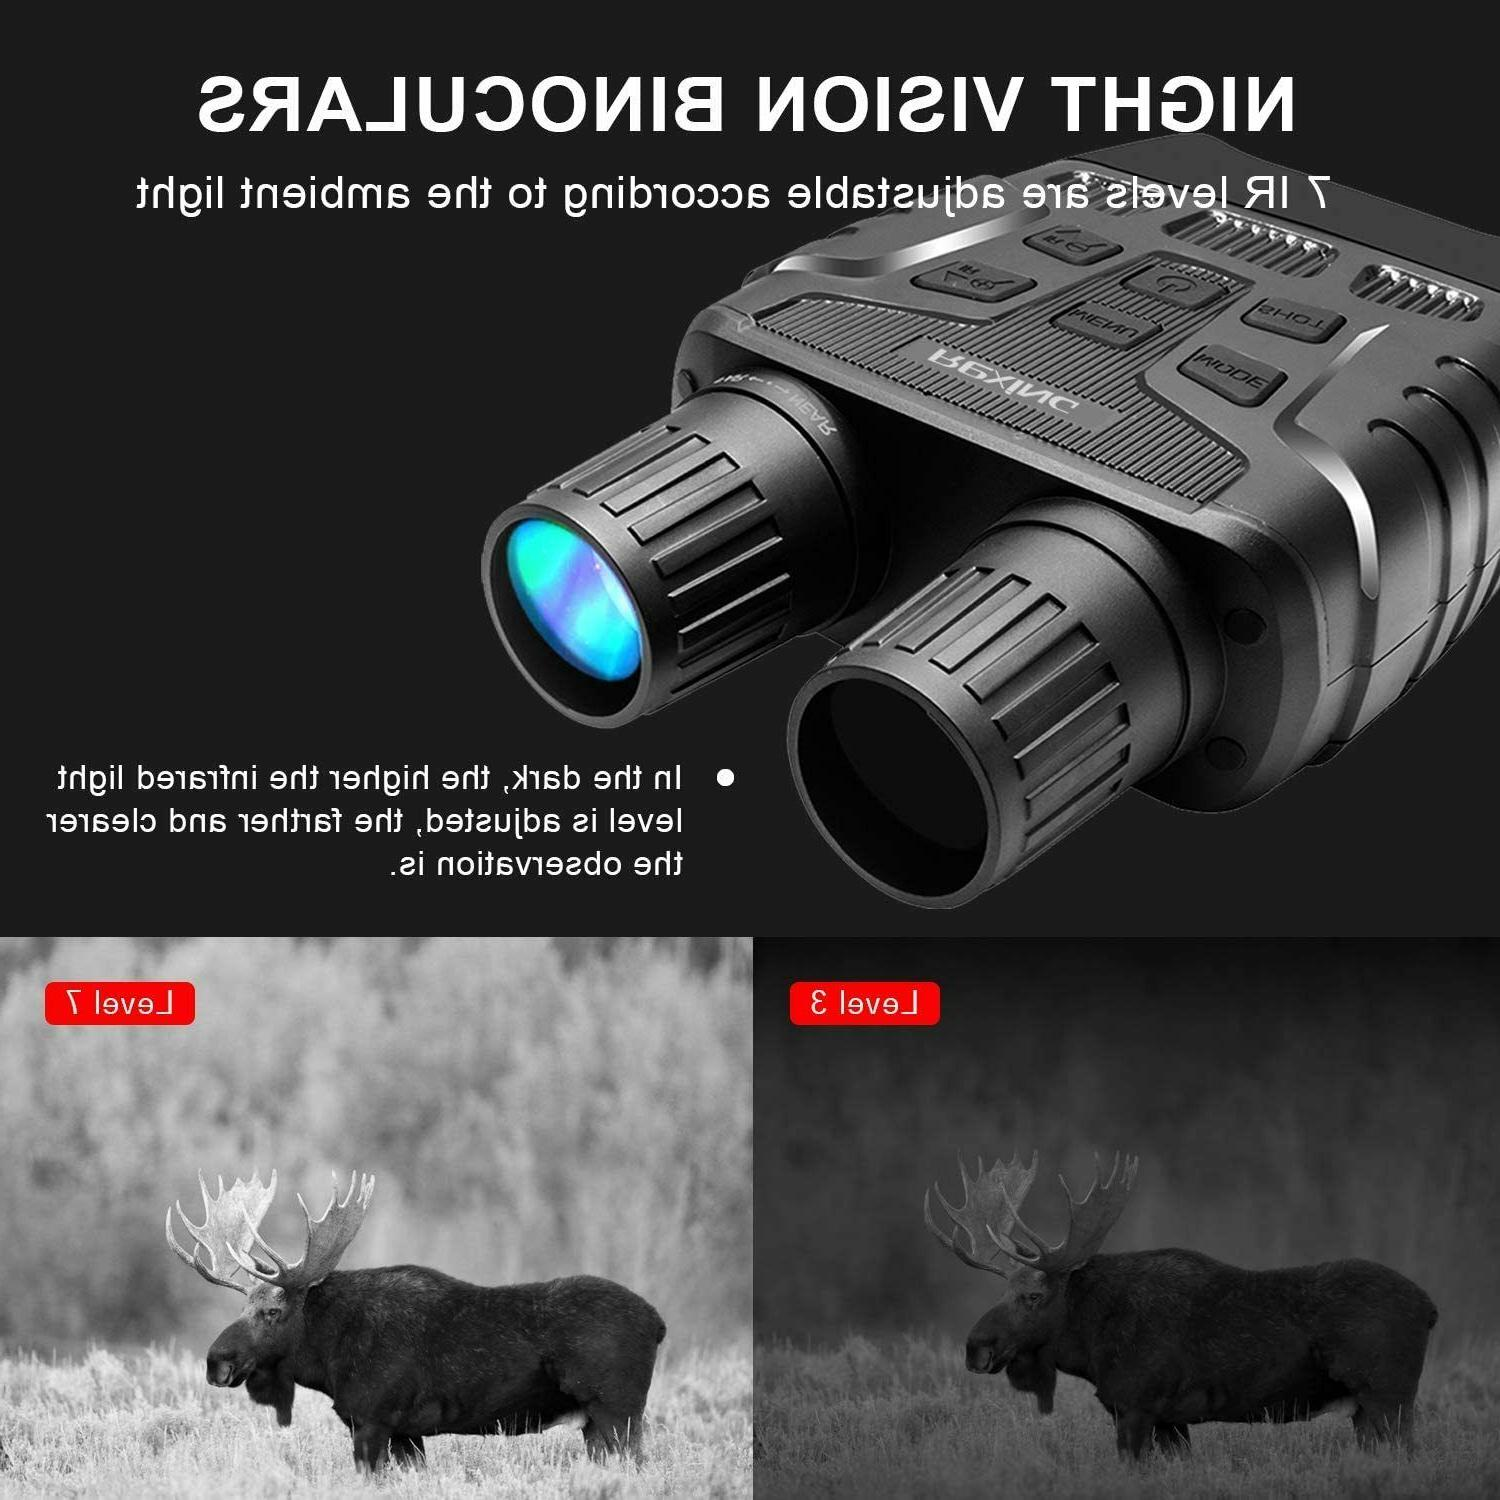 Rexing B1 Infrared Night Vision Screen, Recording